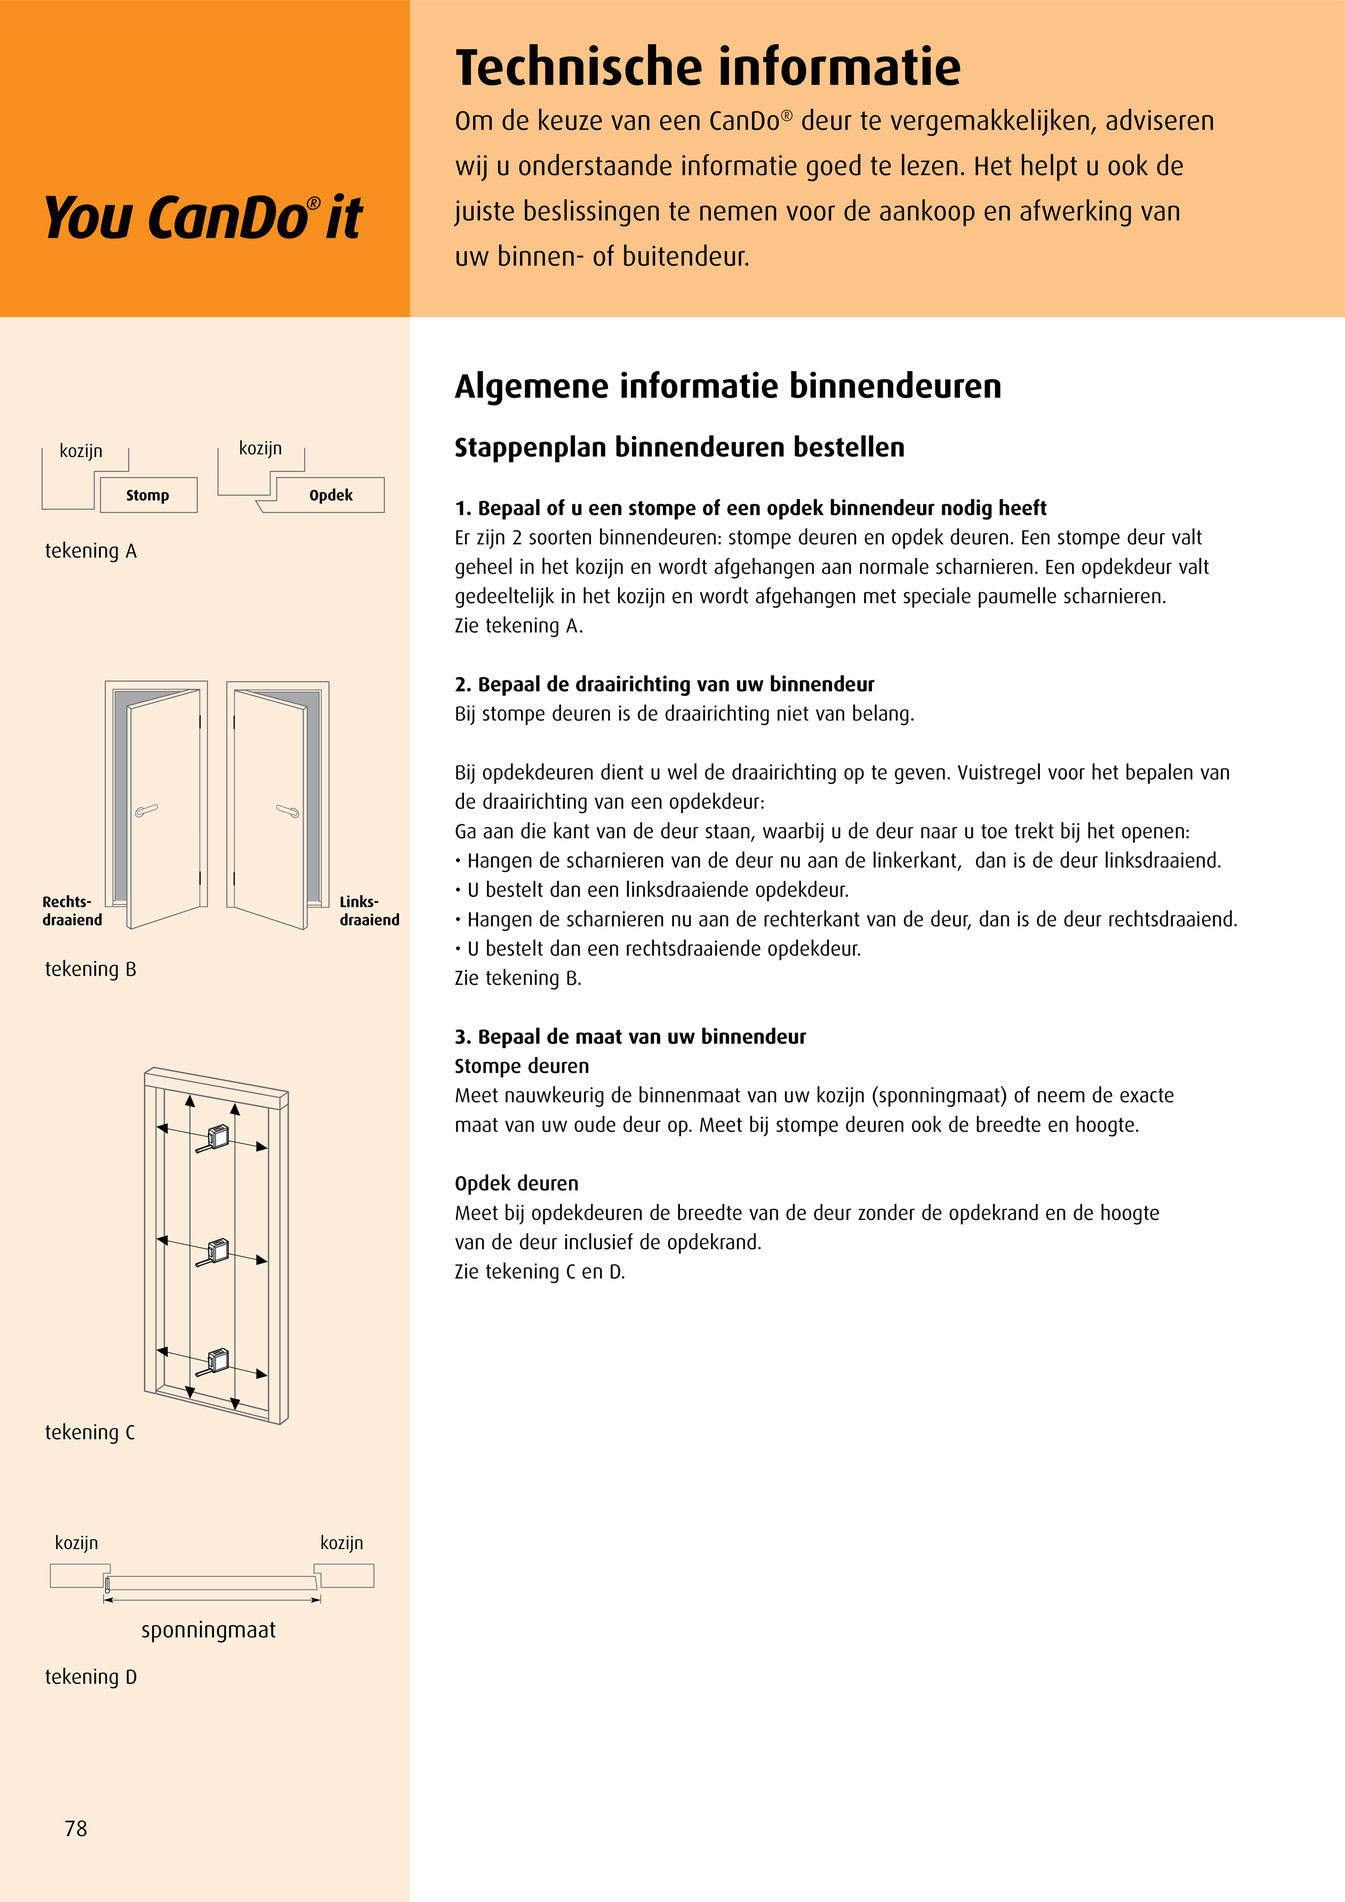 Multimate - CanDo deuren brochure - Pagina 78-79 Multimate Assortiment